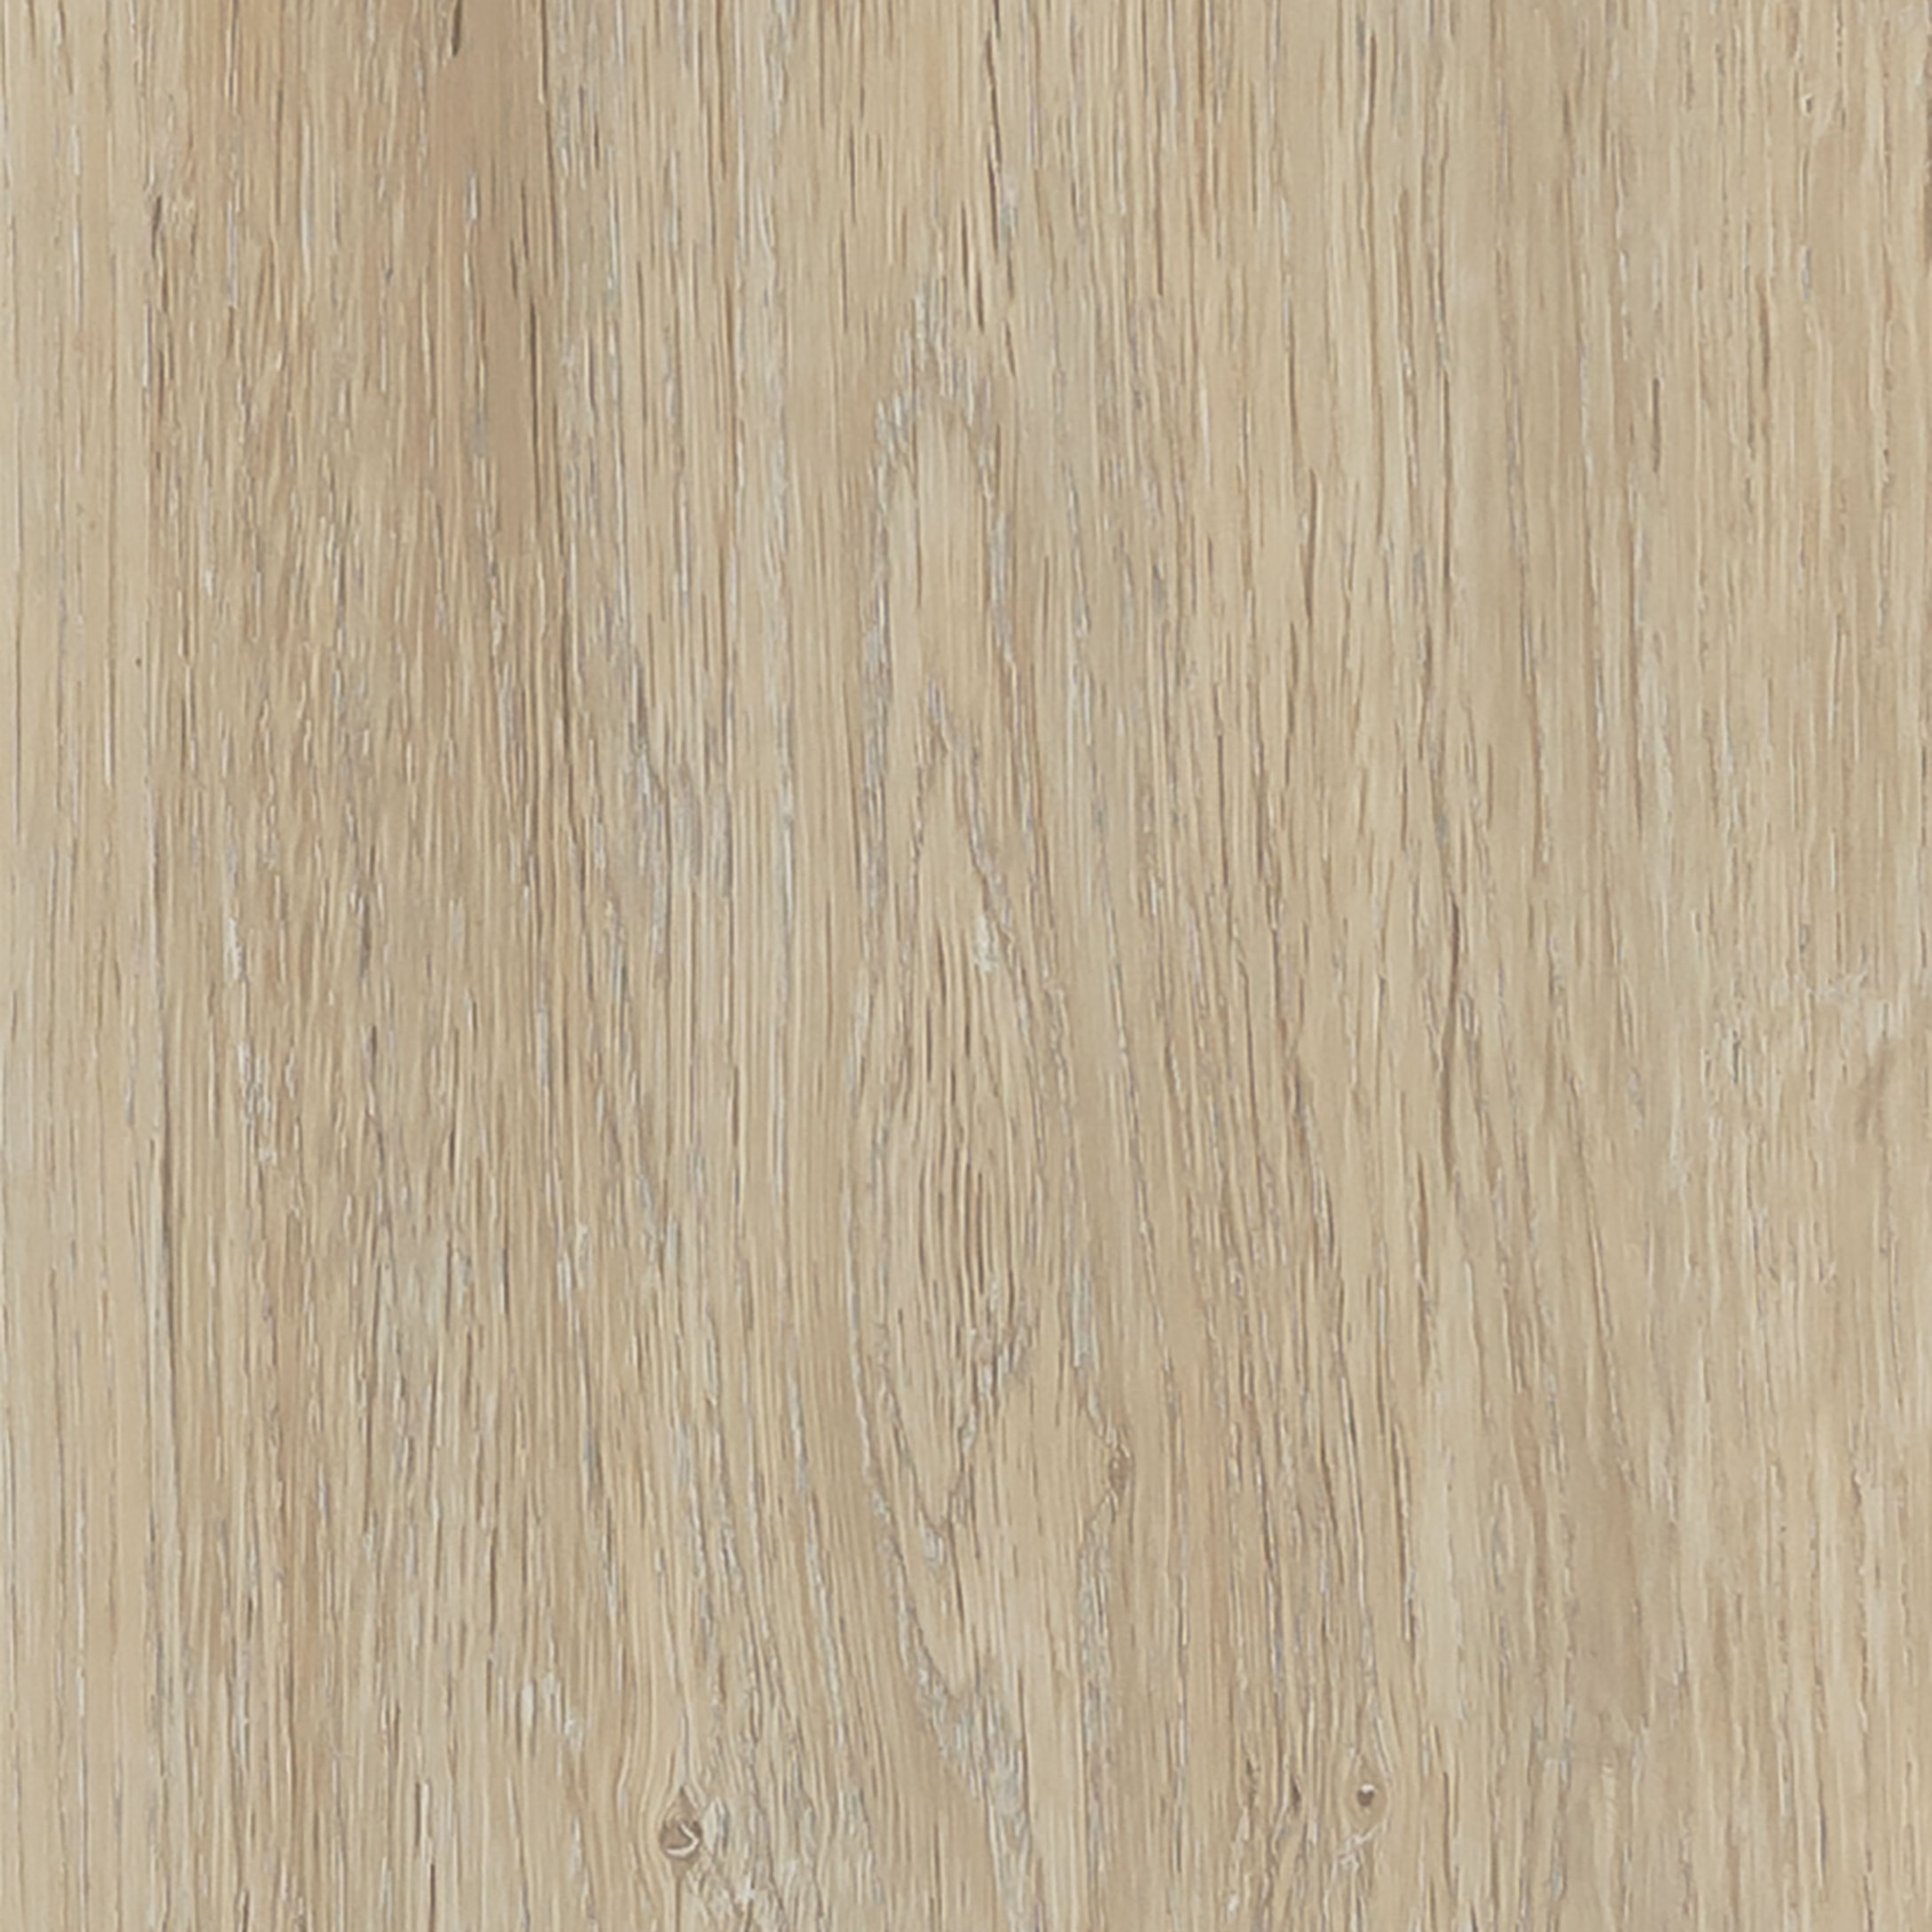 Country Oak, Blond 3477